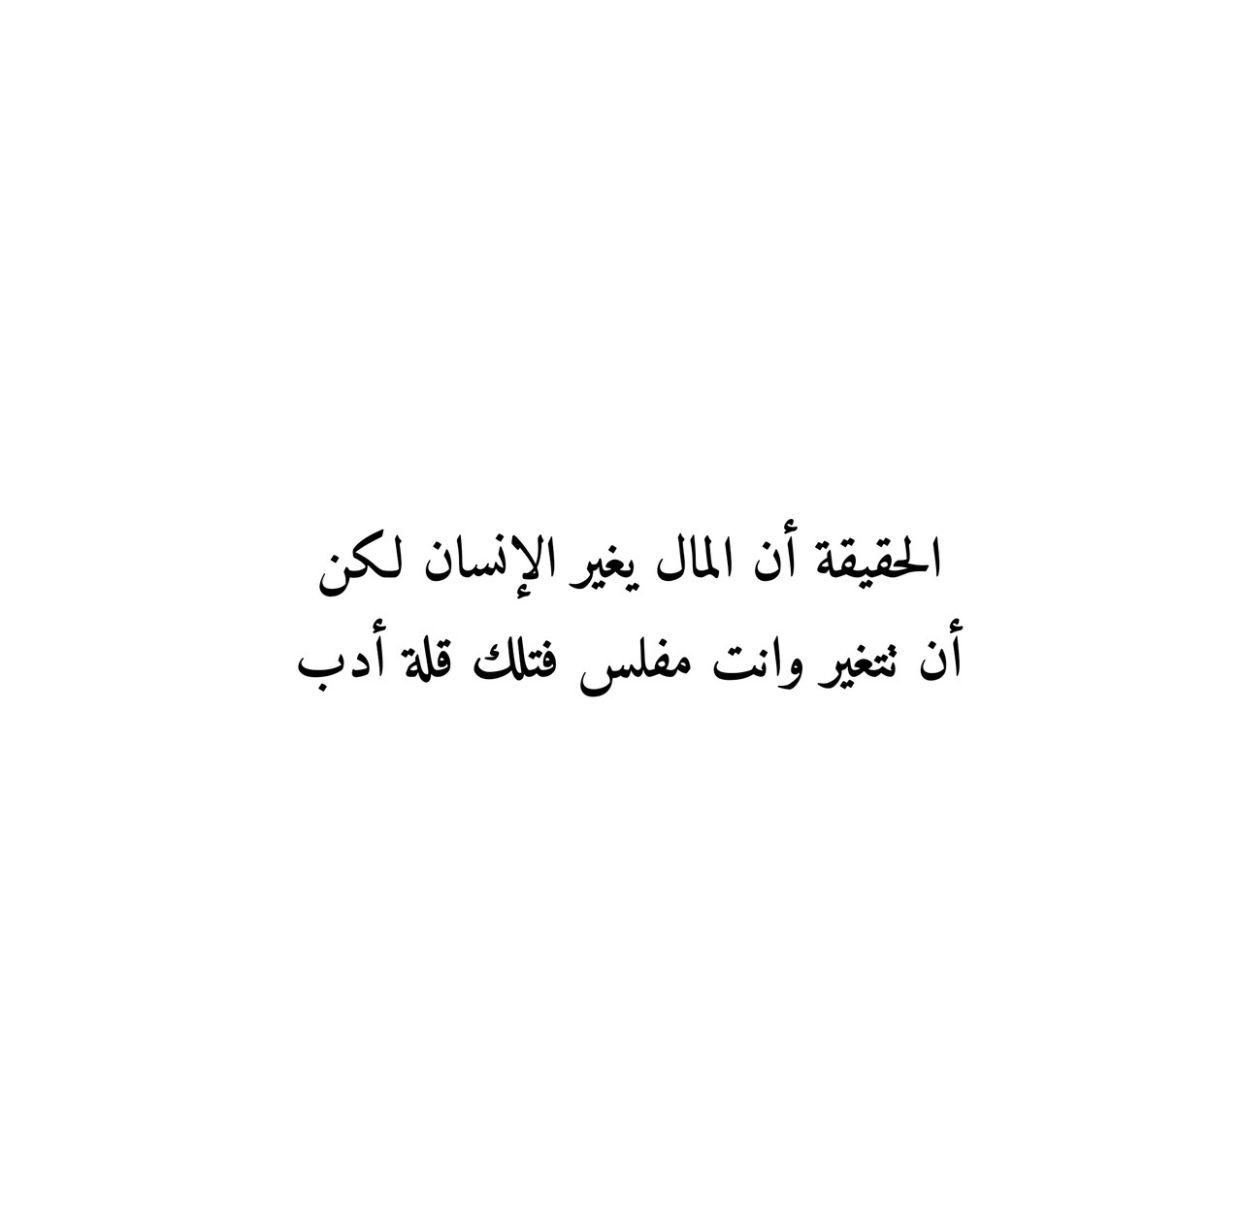 Pin By Fahad Baloch On Arabic Quotes Arabic Quotes Arabic Words Quotes